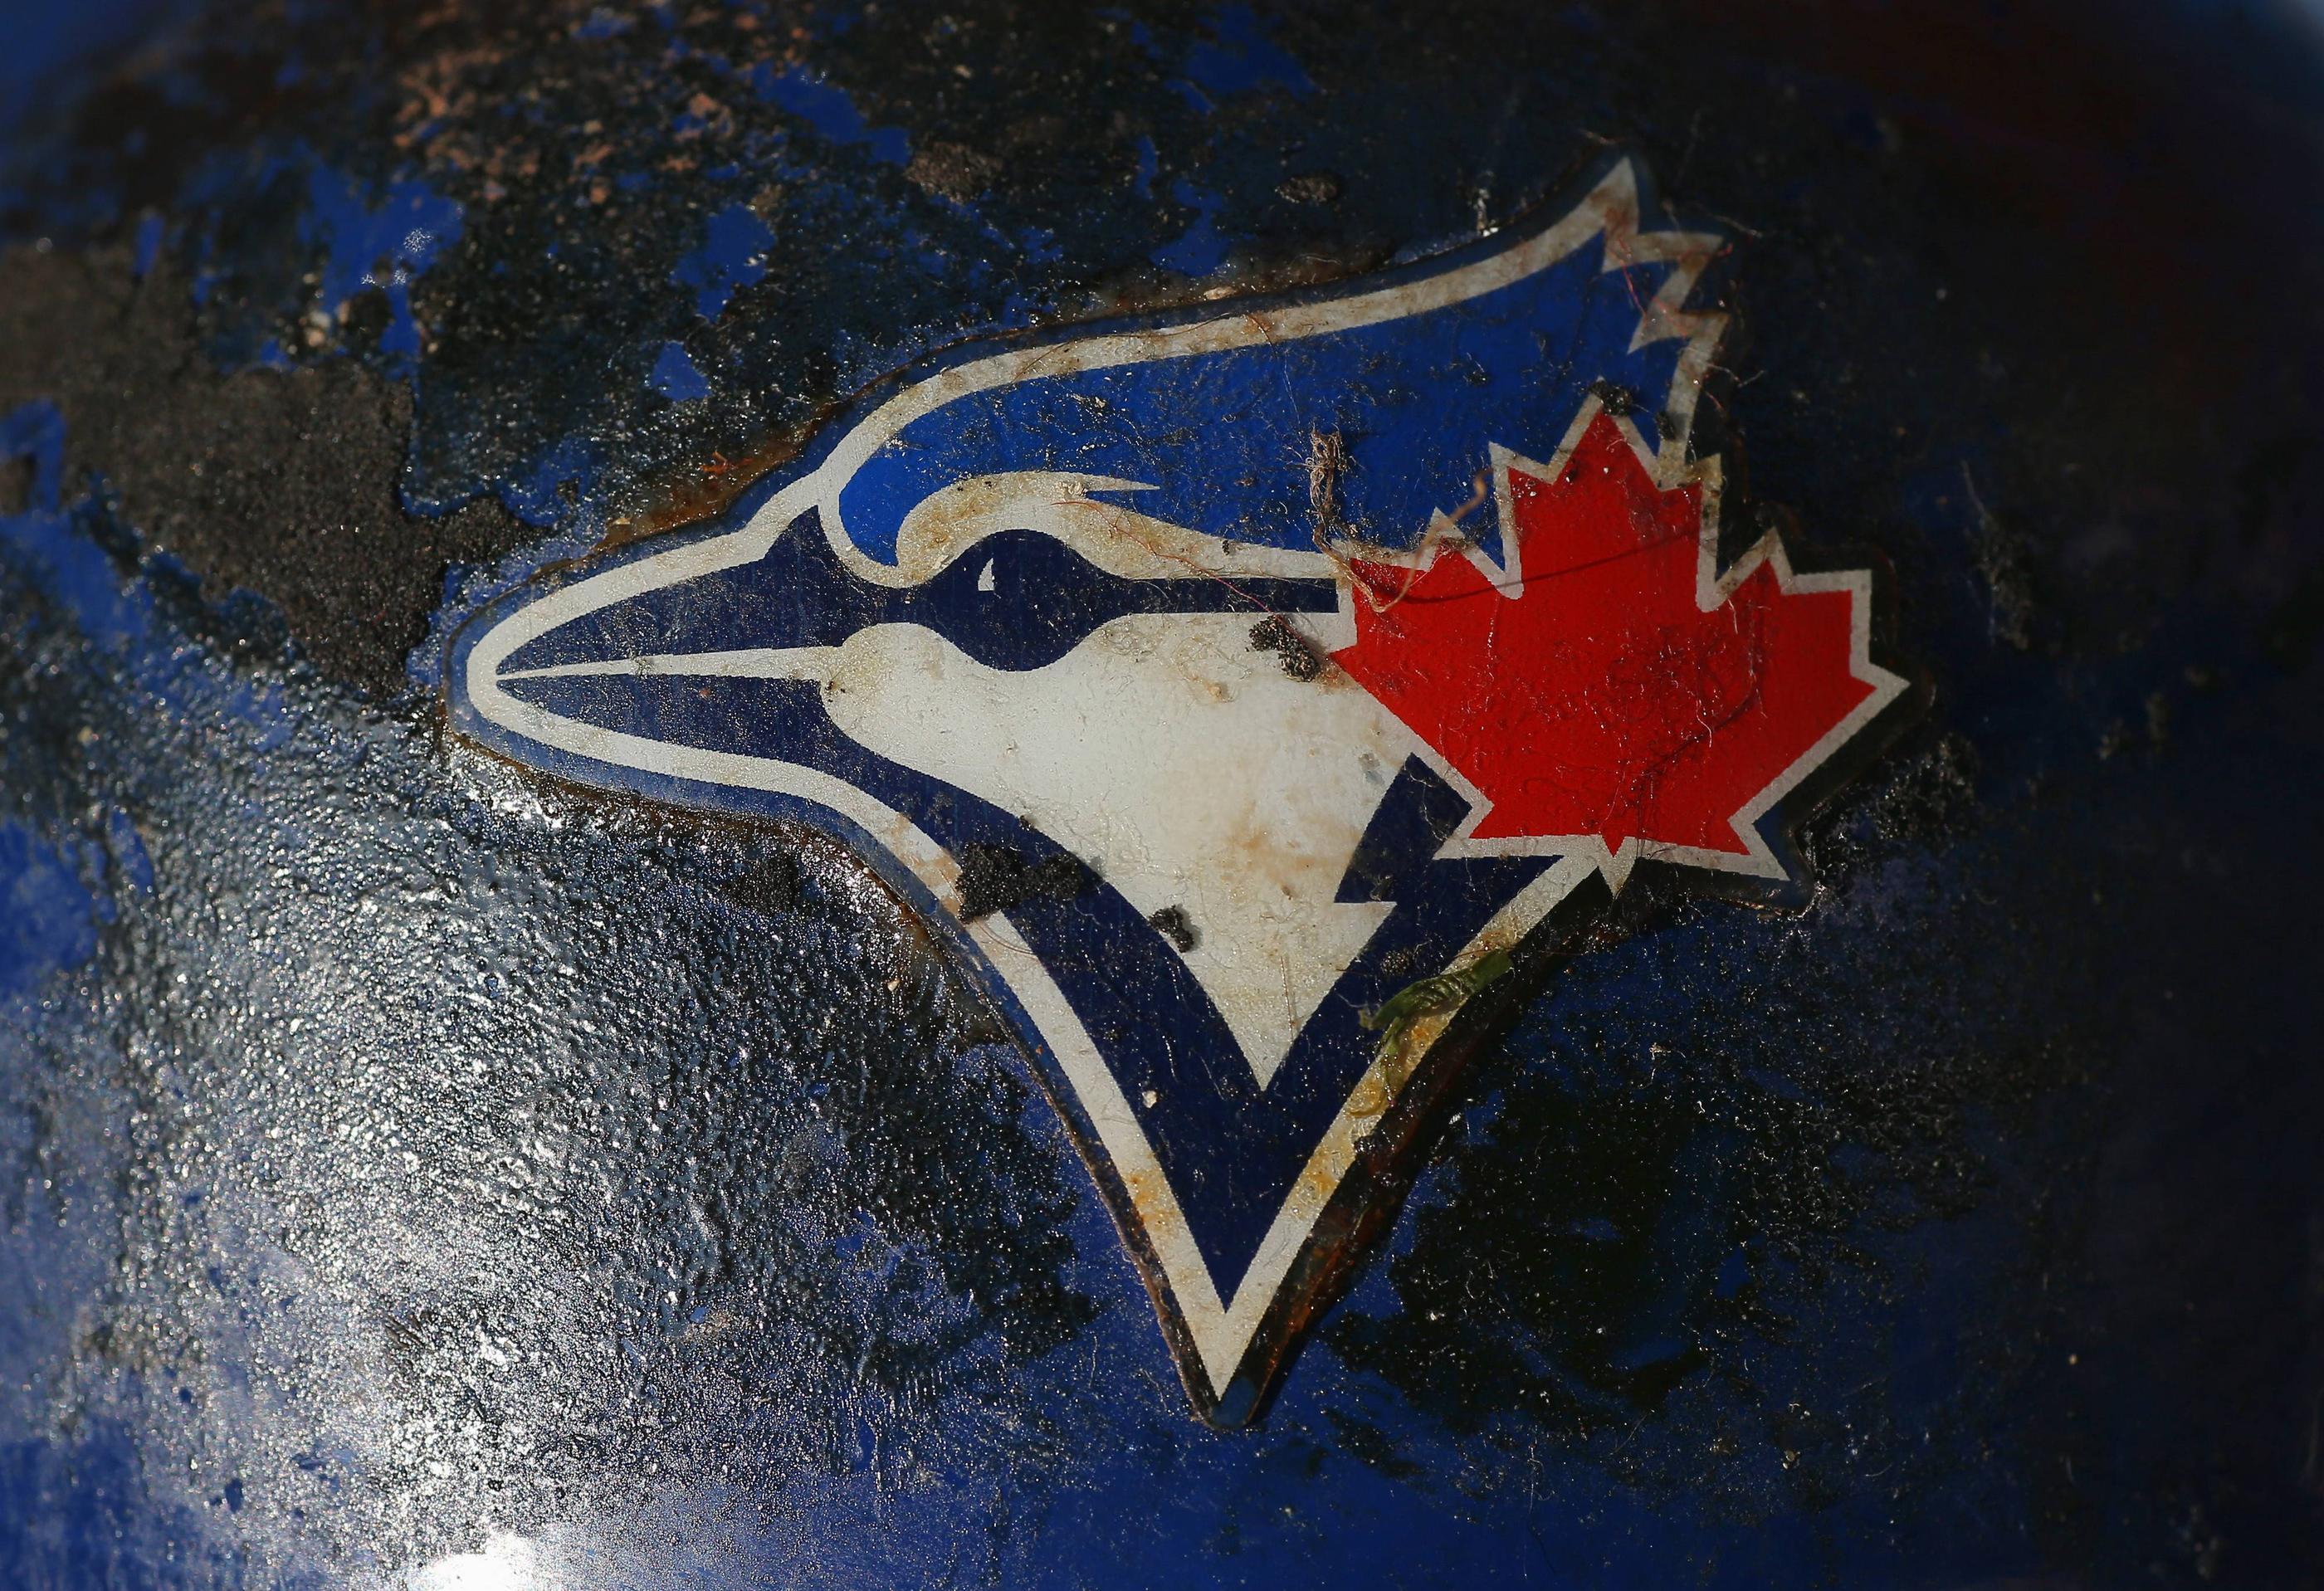 Free Download Toronto Blue Jays Wallpapers 2015 2800x1917 For